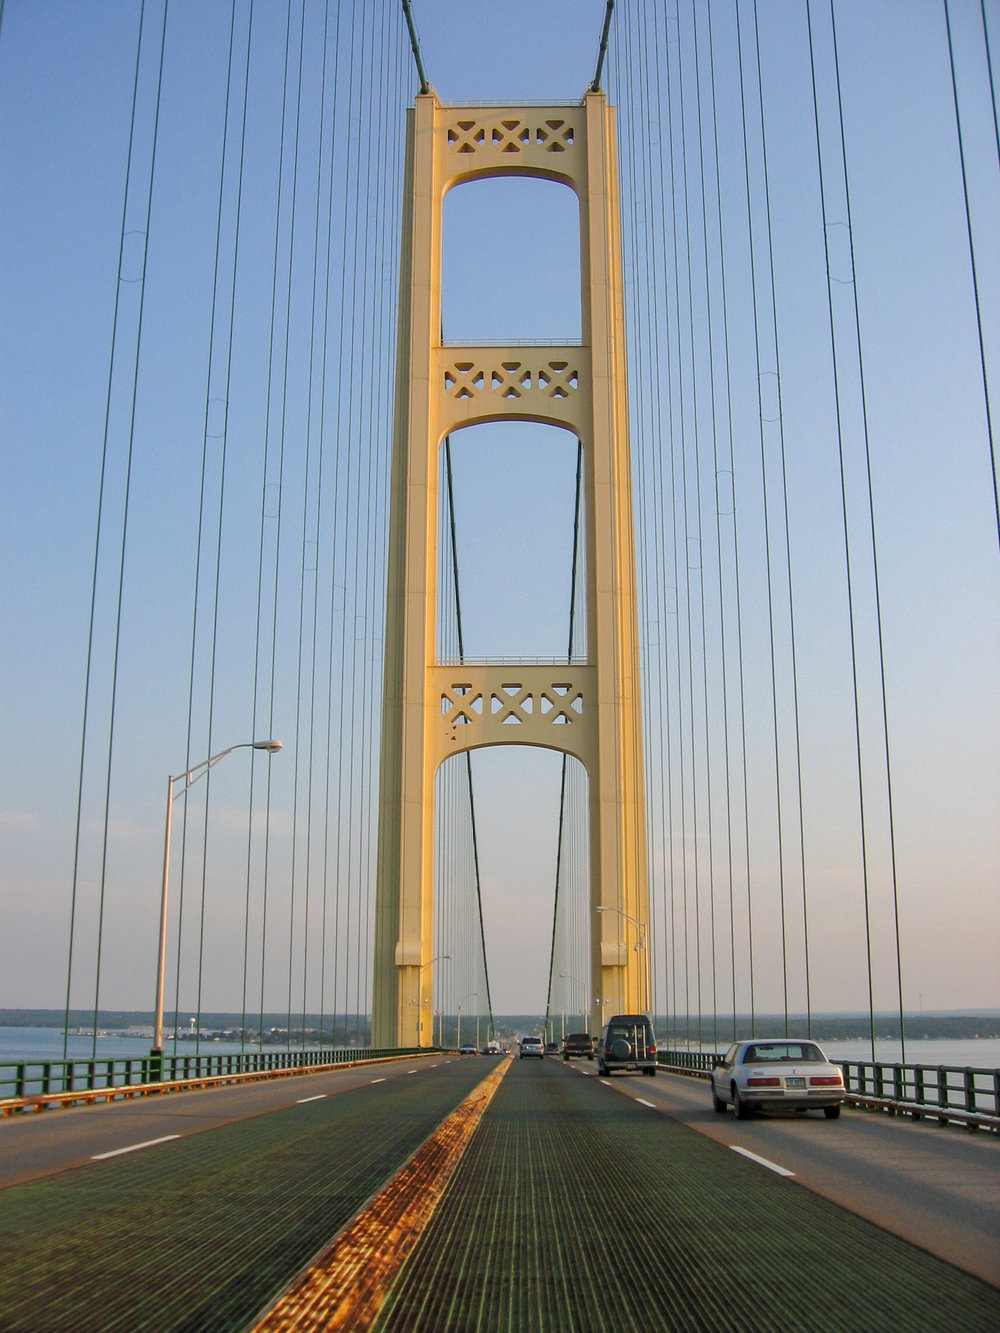 The journey back to the Lower Peninsula across the Mighty Mackinac Bridge.